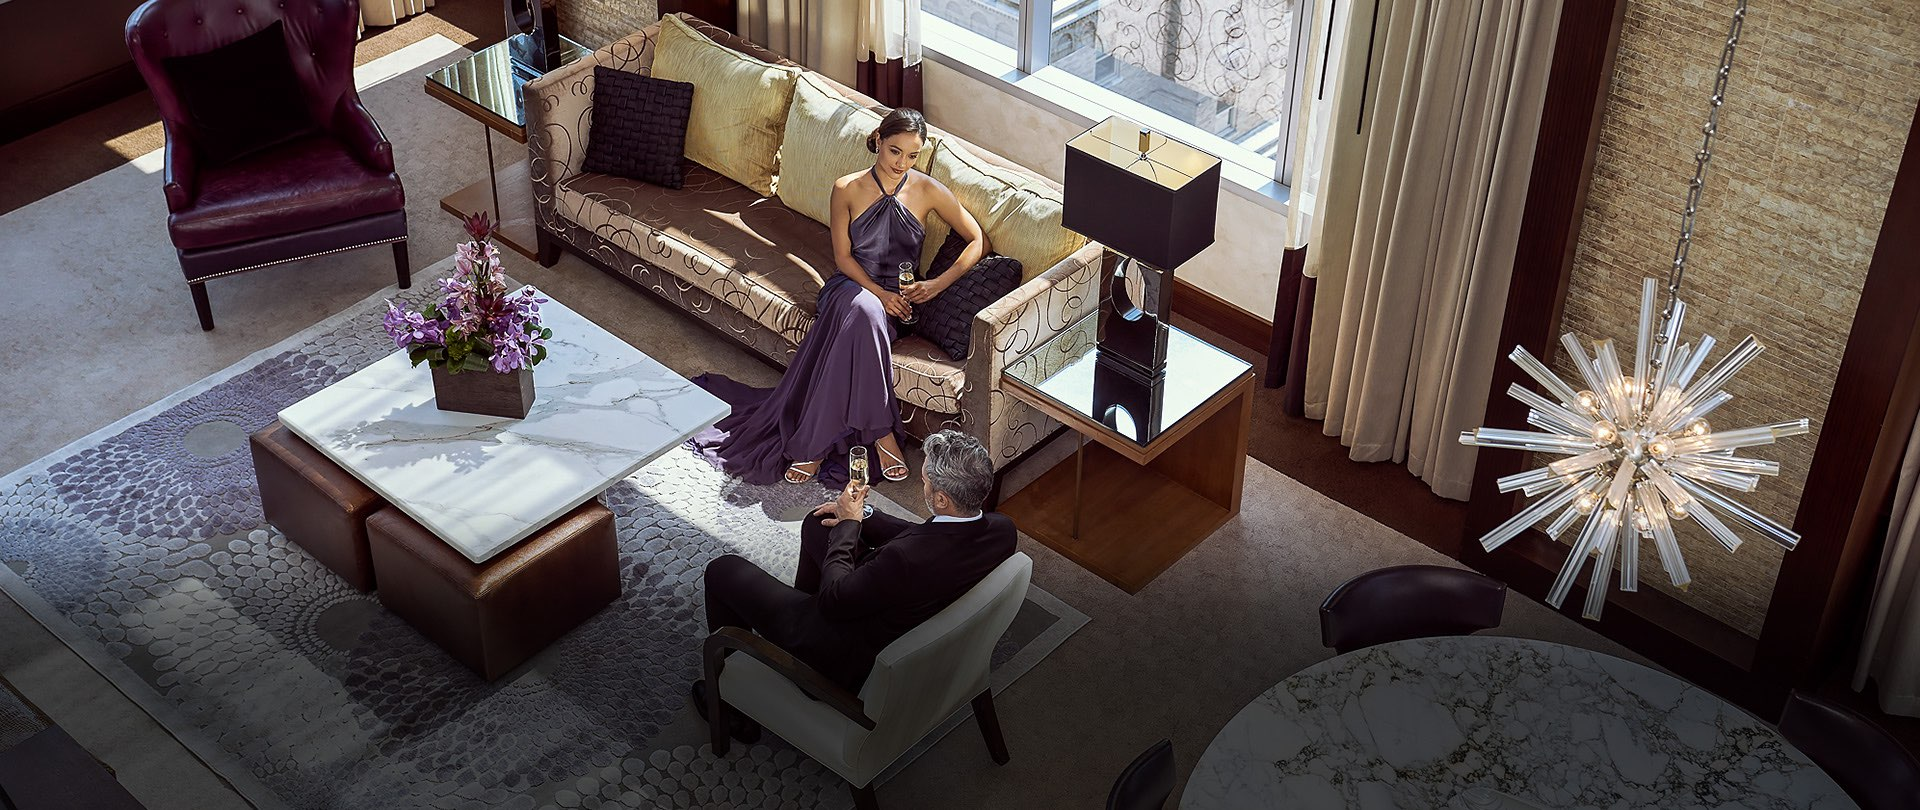 overhead view of woman sitting in hotel suite